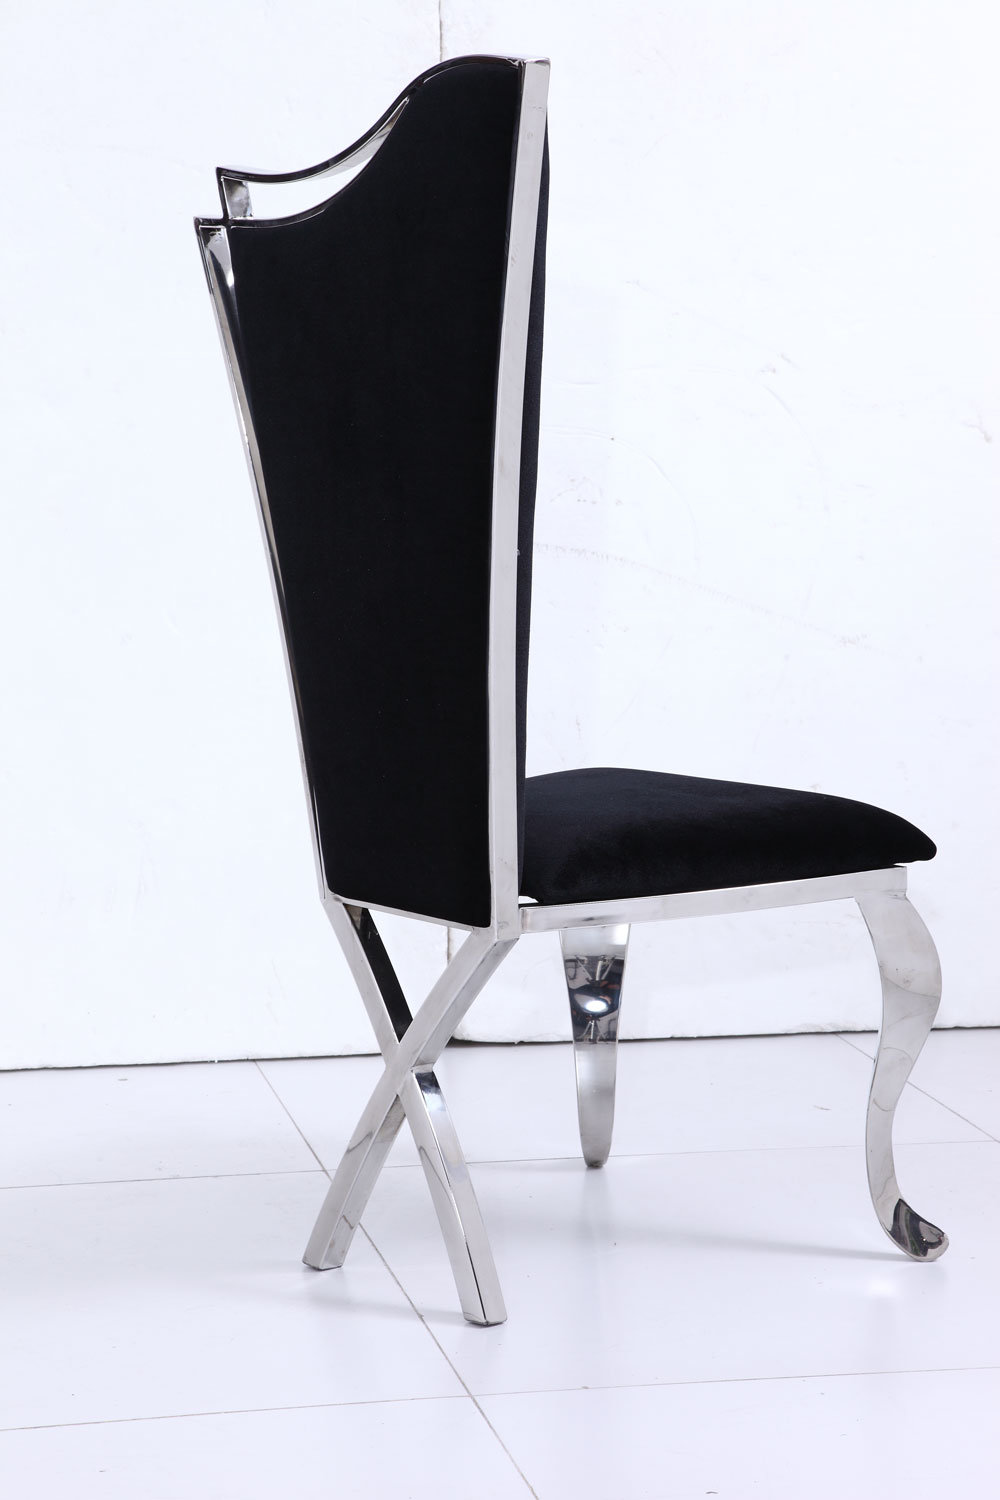 Hot Selling New Style Stainless Steel Frame Dining Chair pictures & photos